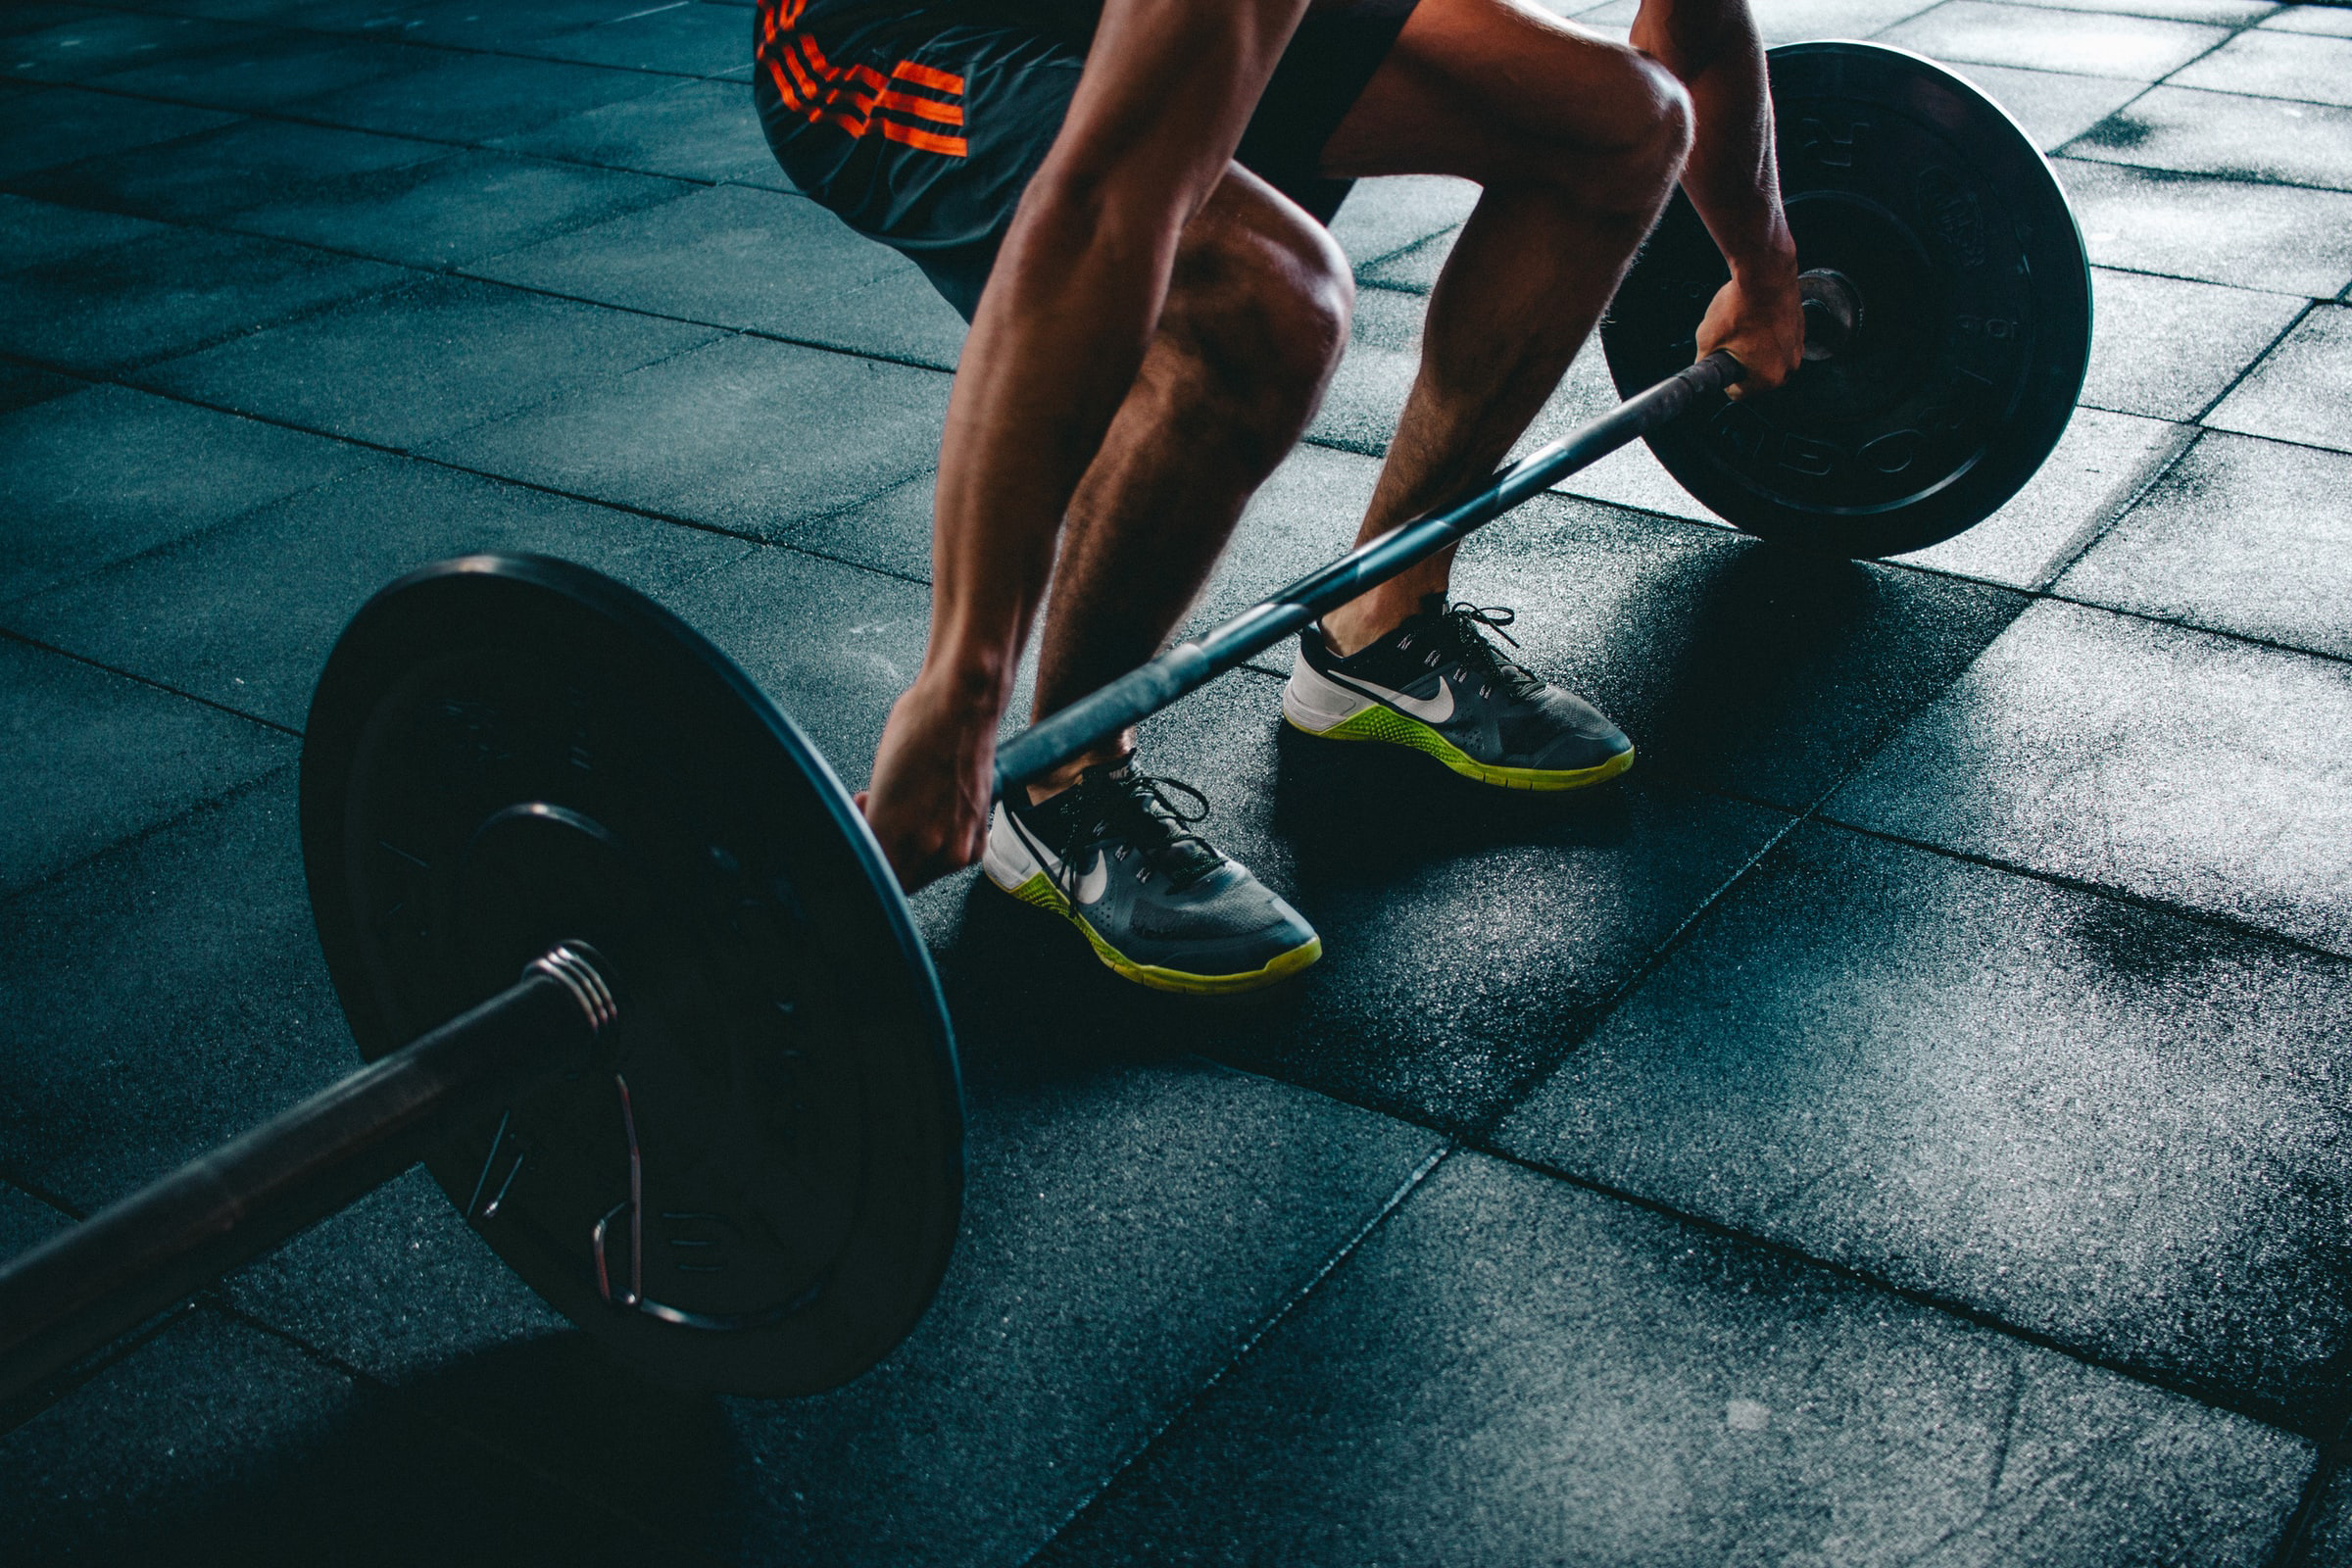 Olympic weightlifting training to lose weight